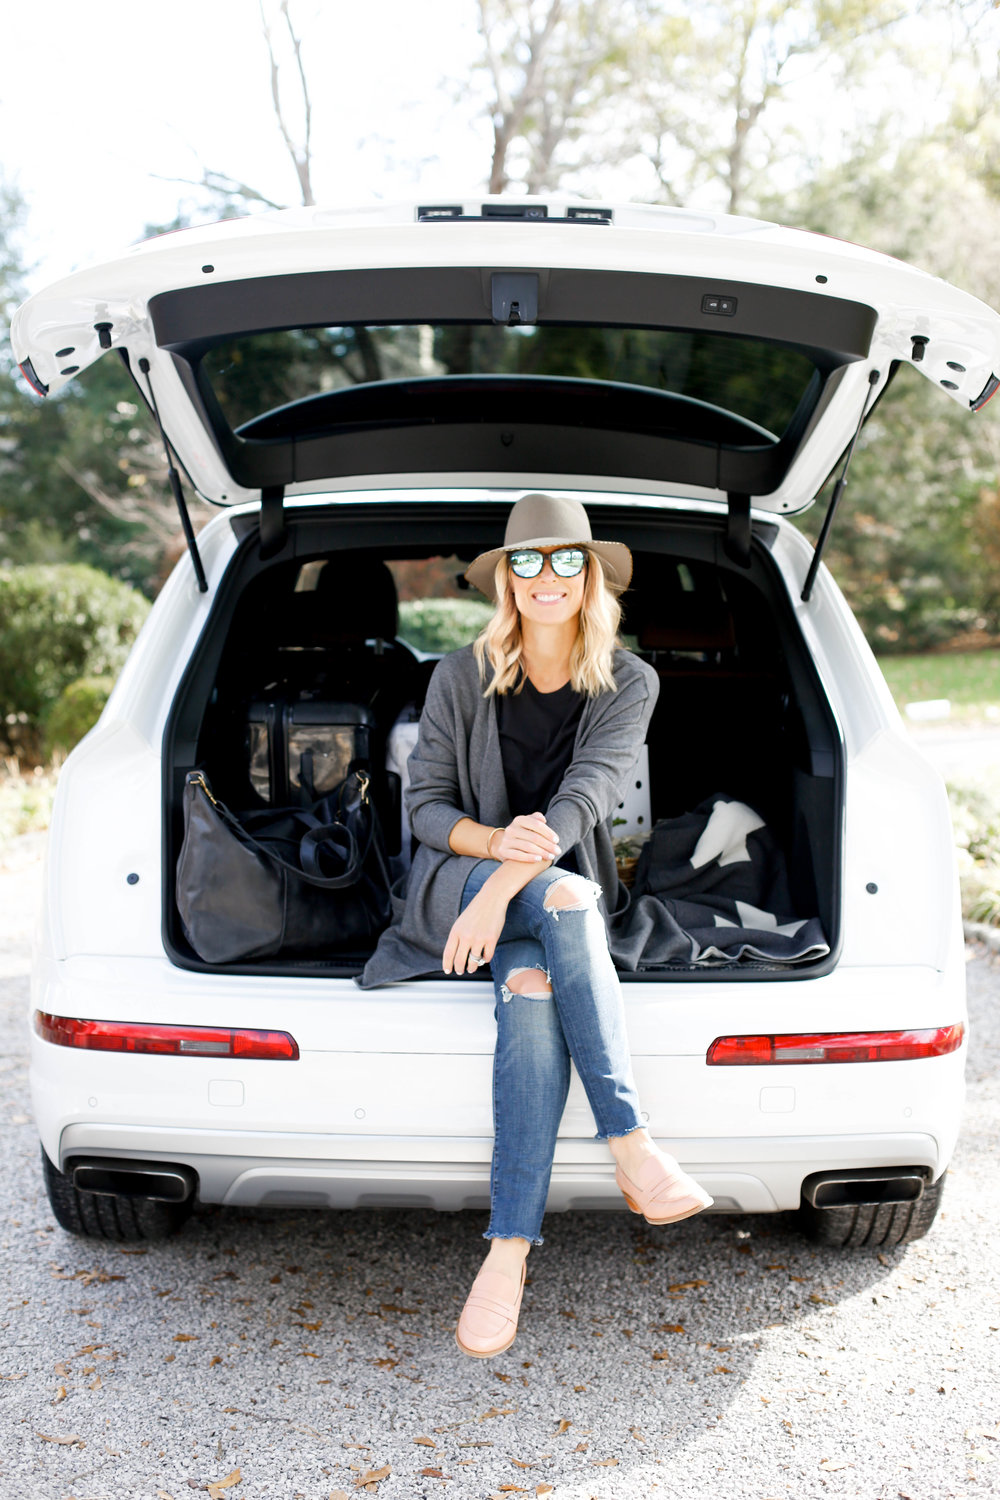 what to wear for holiday travel, what to wear for traveling in a car